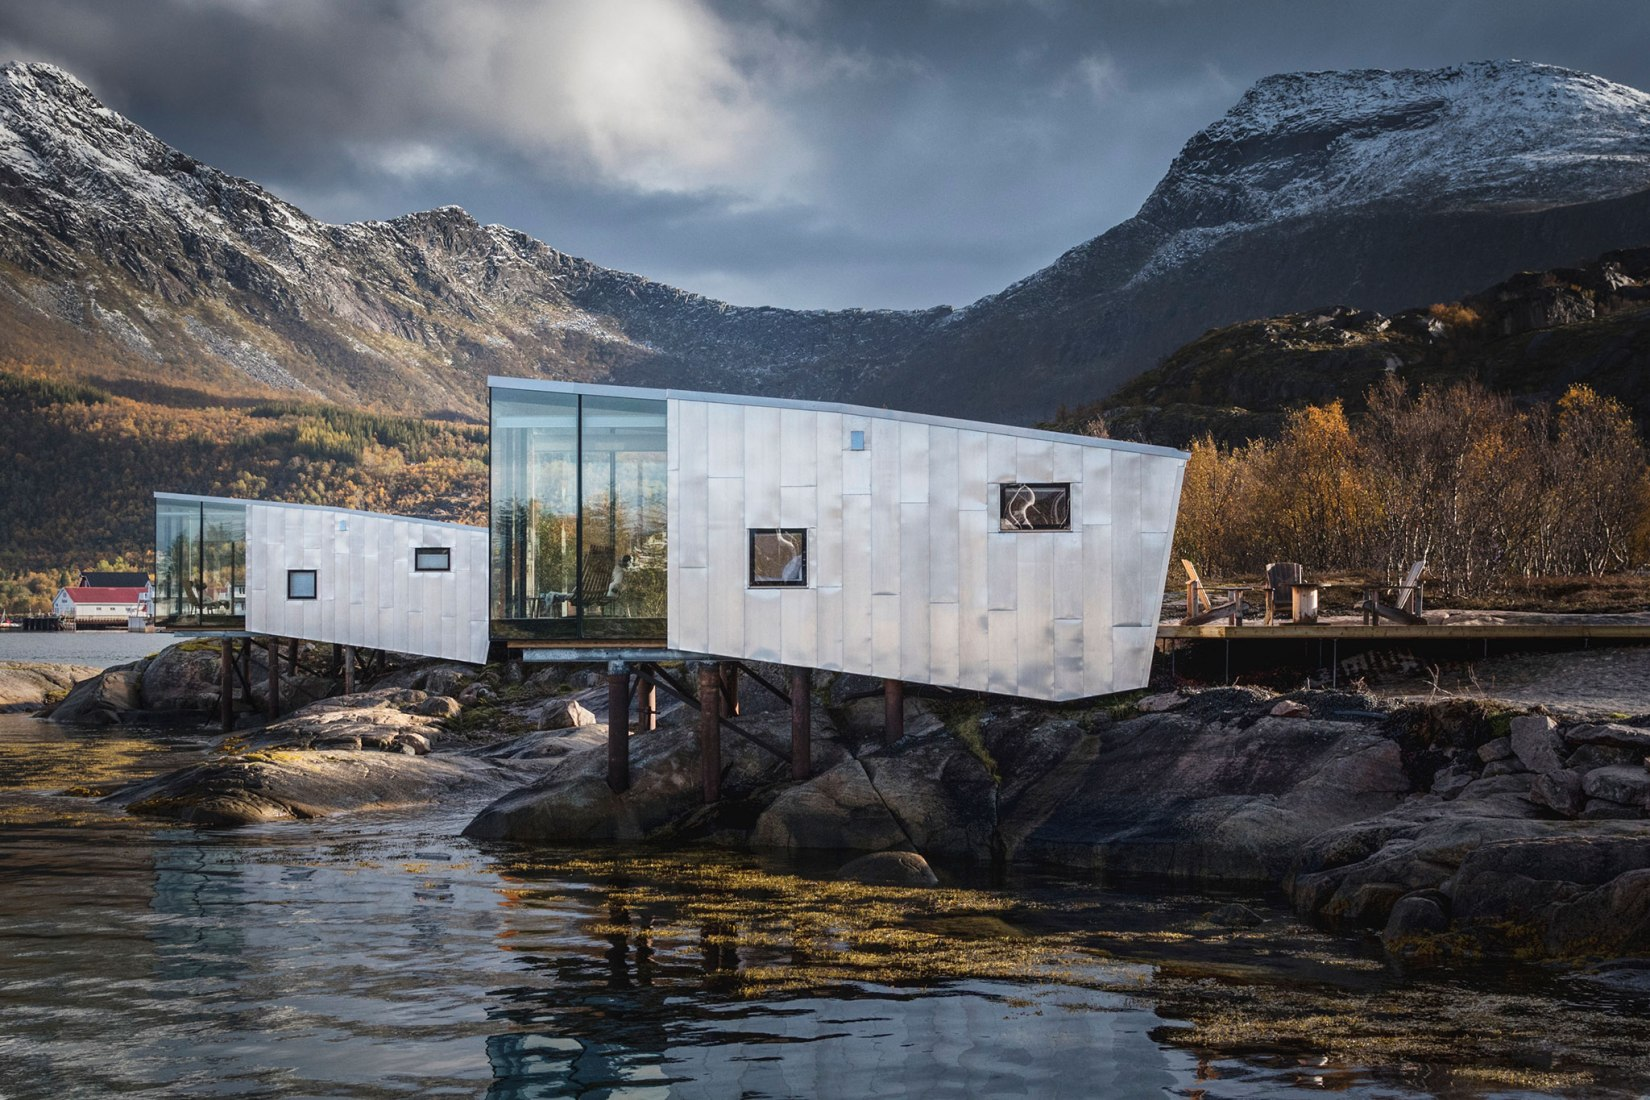 Manshausen 2.0 extension Island Resort by Stinessen Arkitektur. Photograph by Adrien Giret